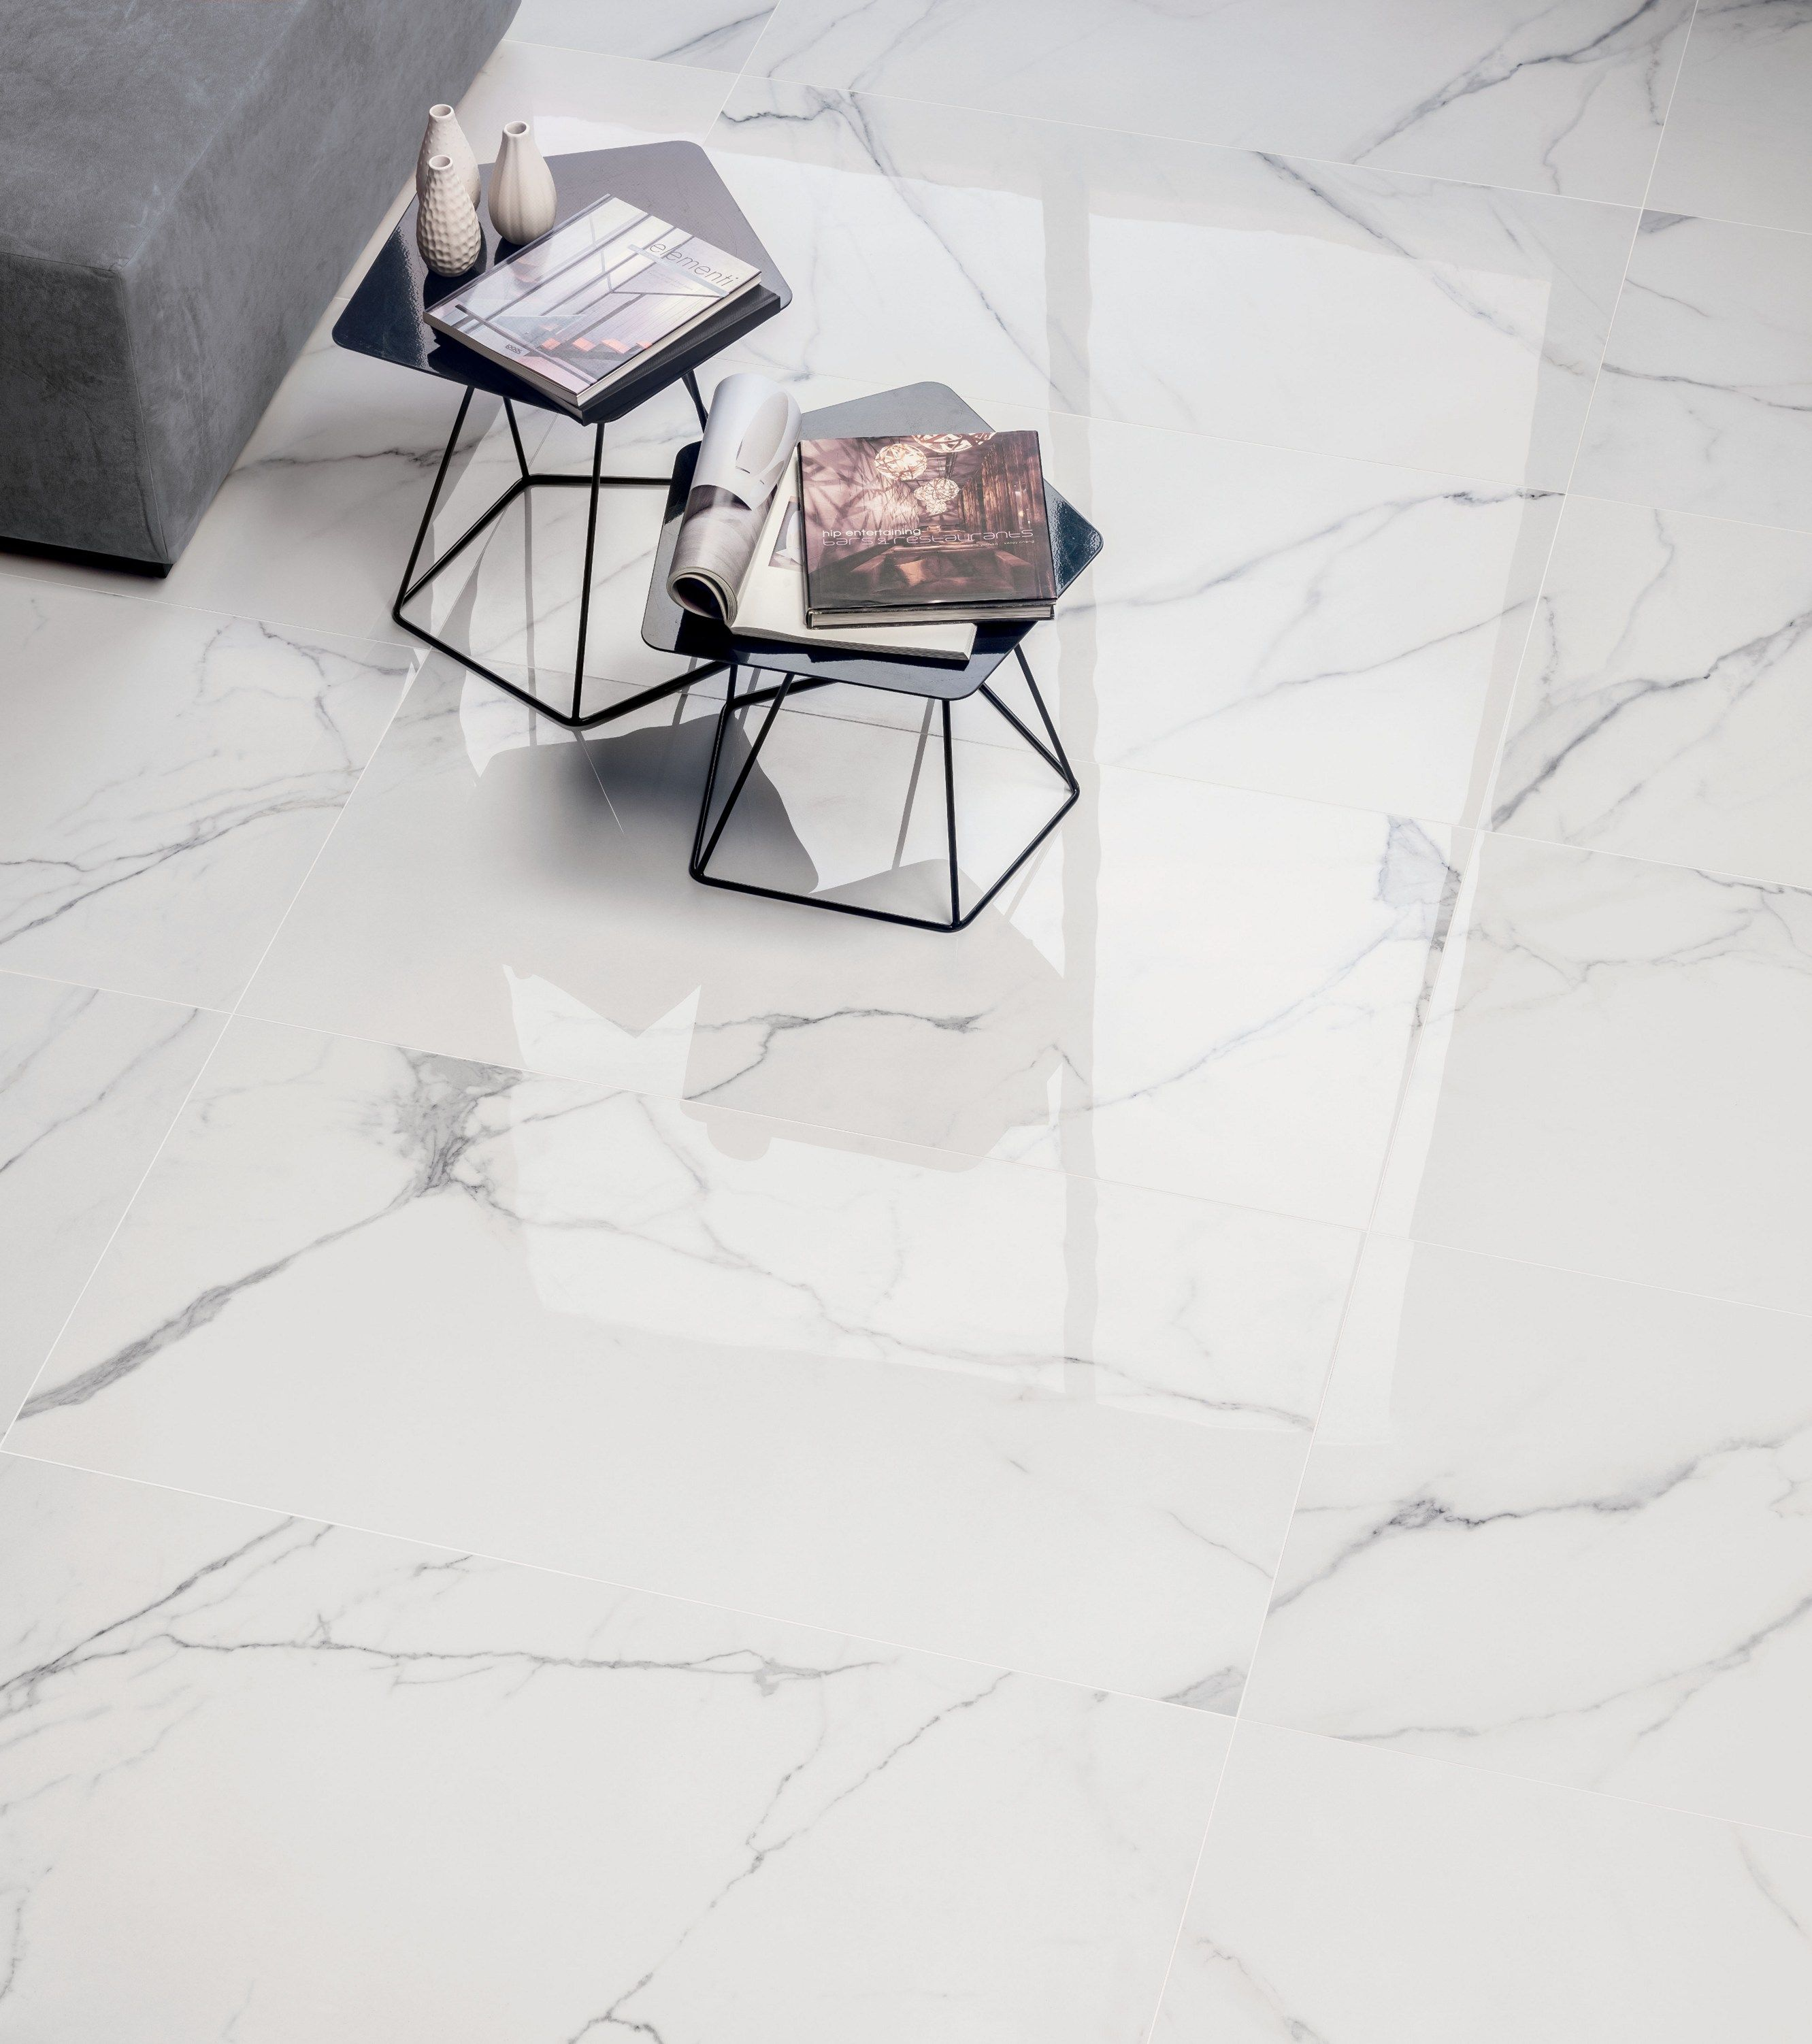 Wall Floor Tiles With Marble Effect Supreme By Flaviker Contemporary Eco Ceramics Porcelanato Marmorizado Porcelanato Para Sala Porcelanato